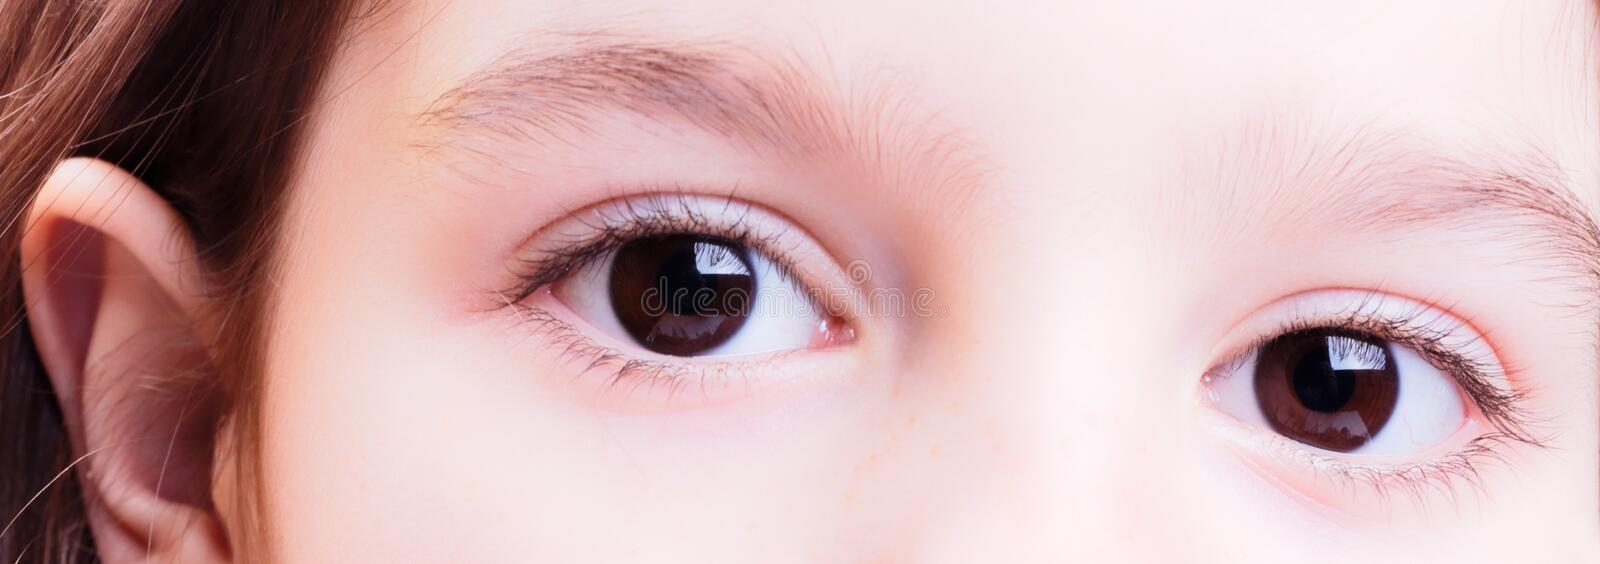 Eyes royalty free stock image